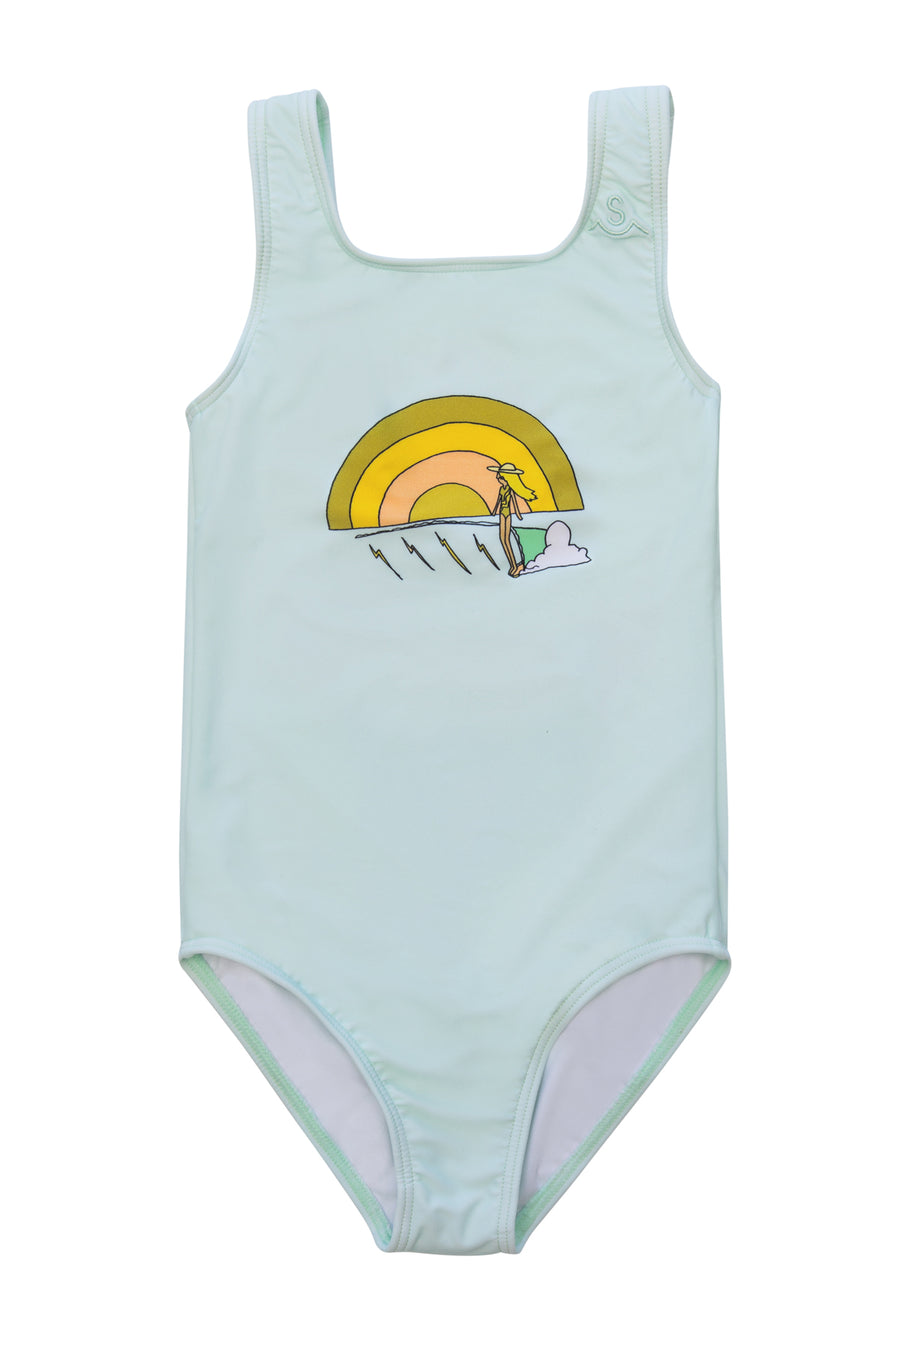 Surf Bird / Surfy Birdy x Seaesta Surf Swimsuit